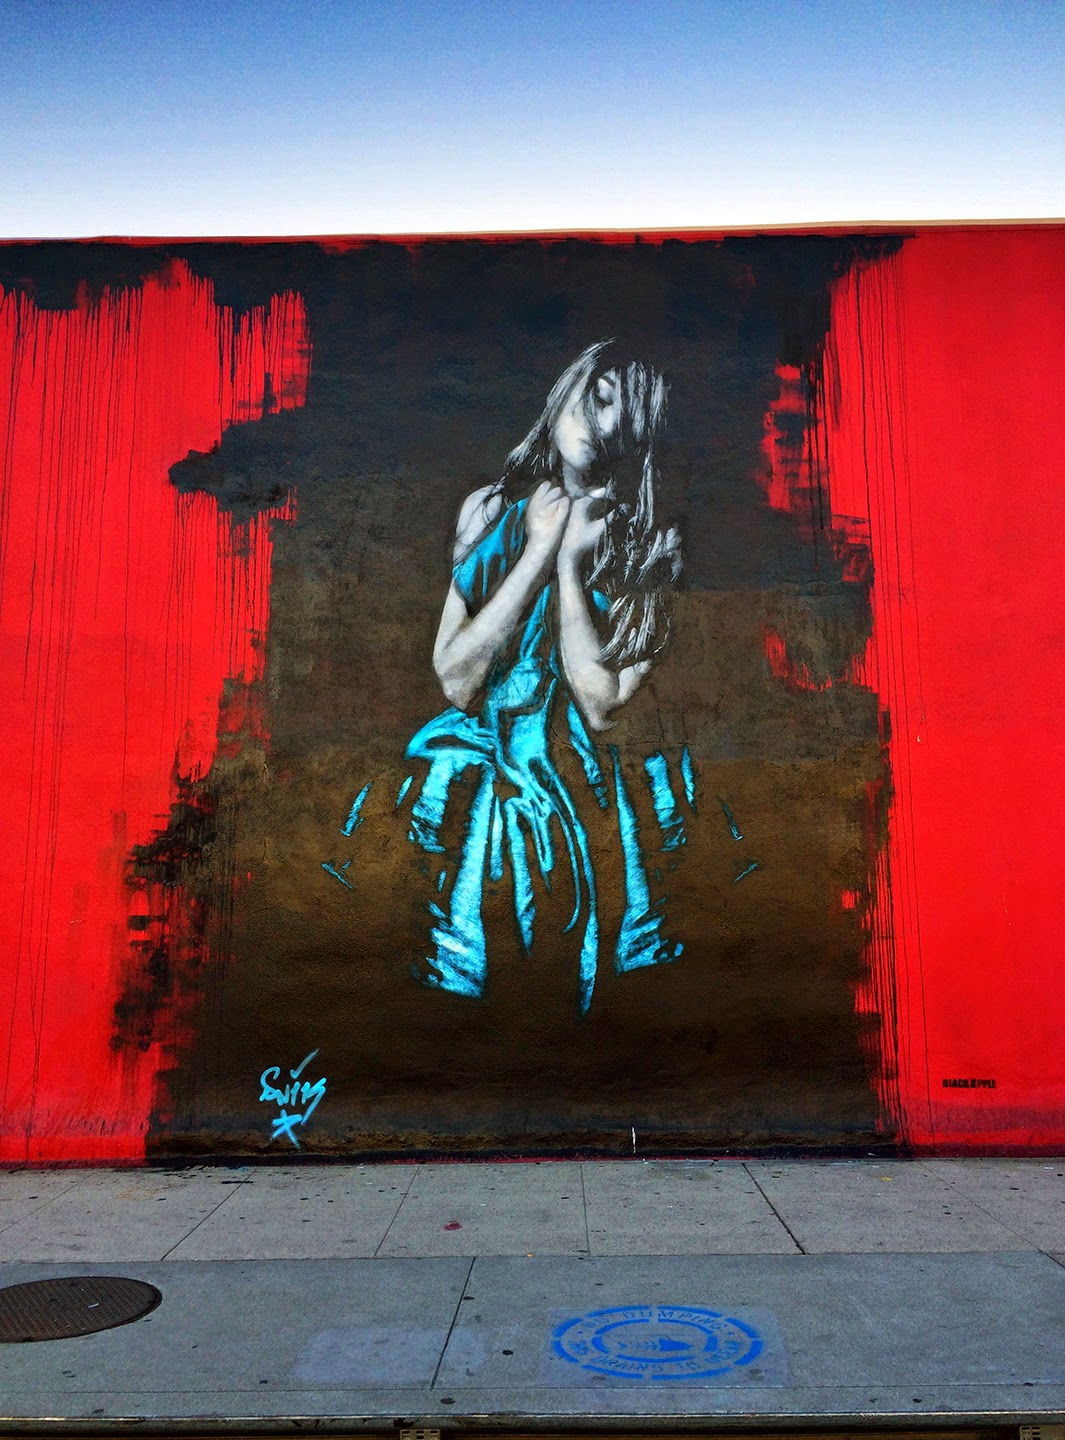 Snik New Street Pieces - Los Angeles, USA